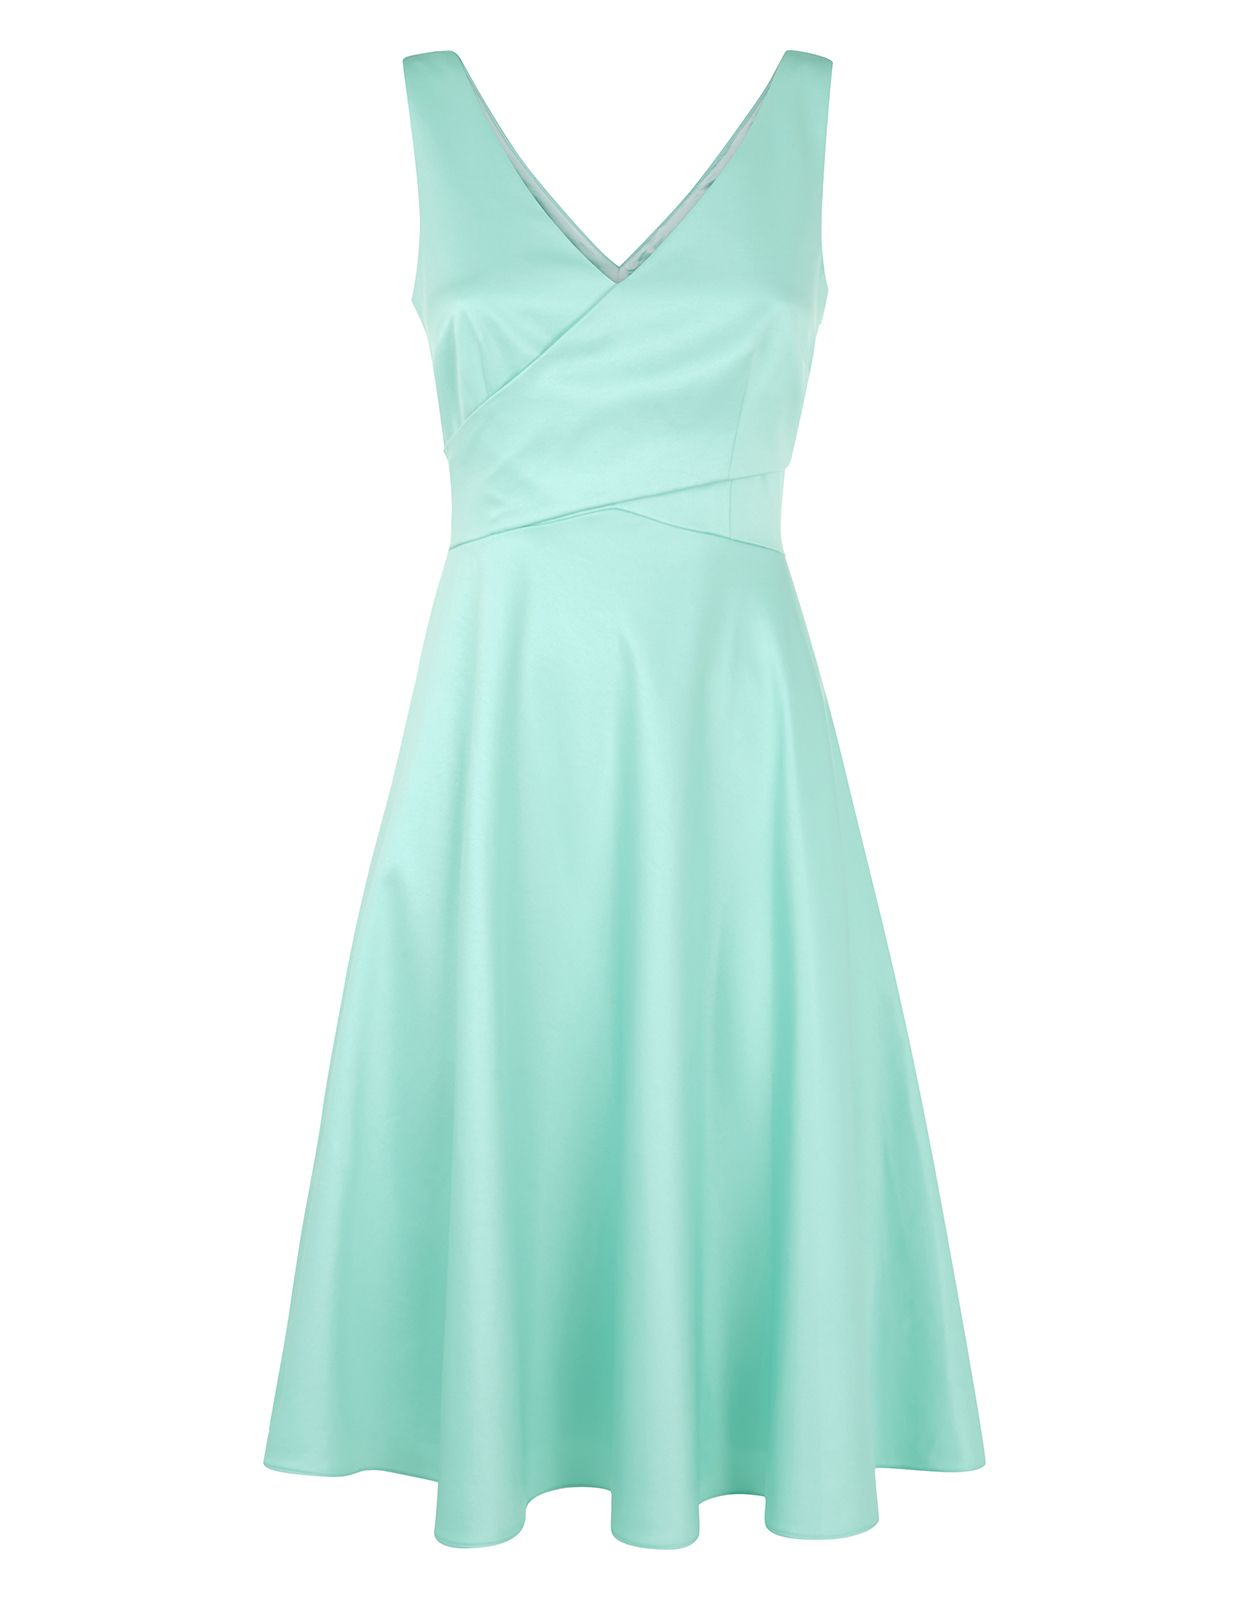 Brooke Dress | Blue | Monsoon. £89. Sale price £64 for green colour ...